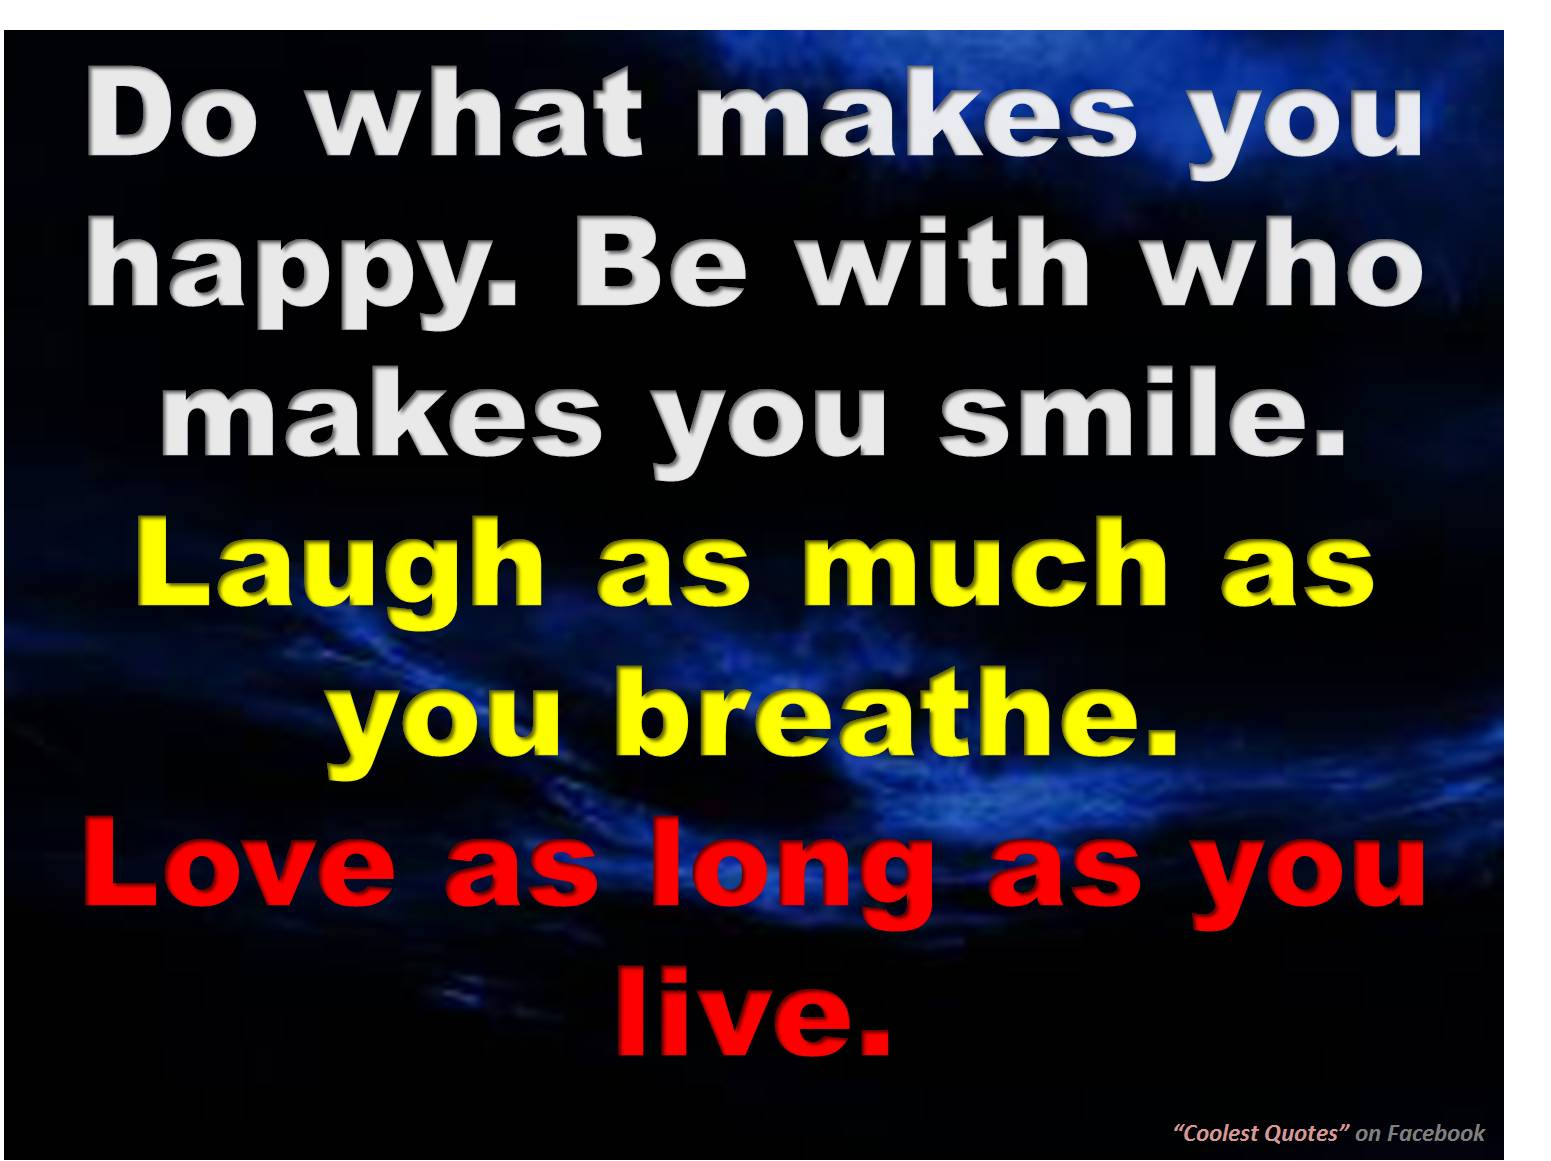 Beautiful Quote For A Life Full Of Love And Smiles